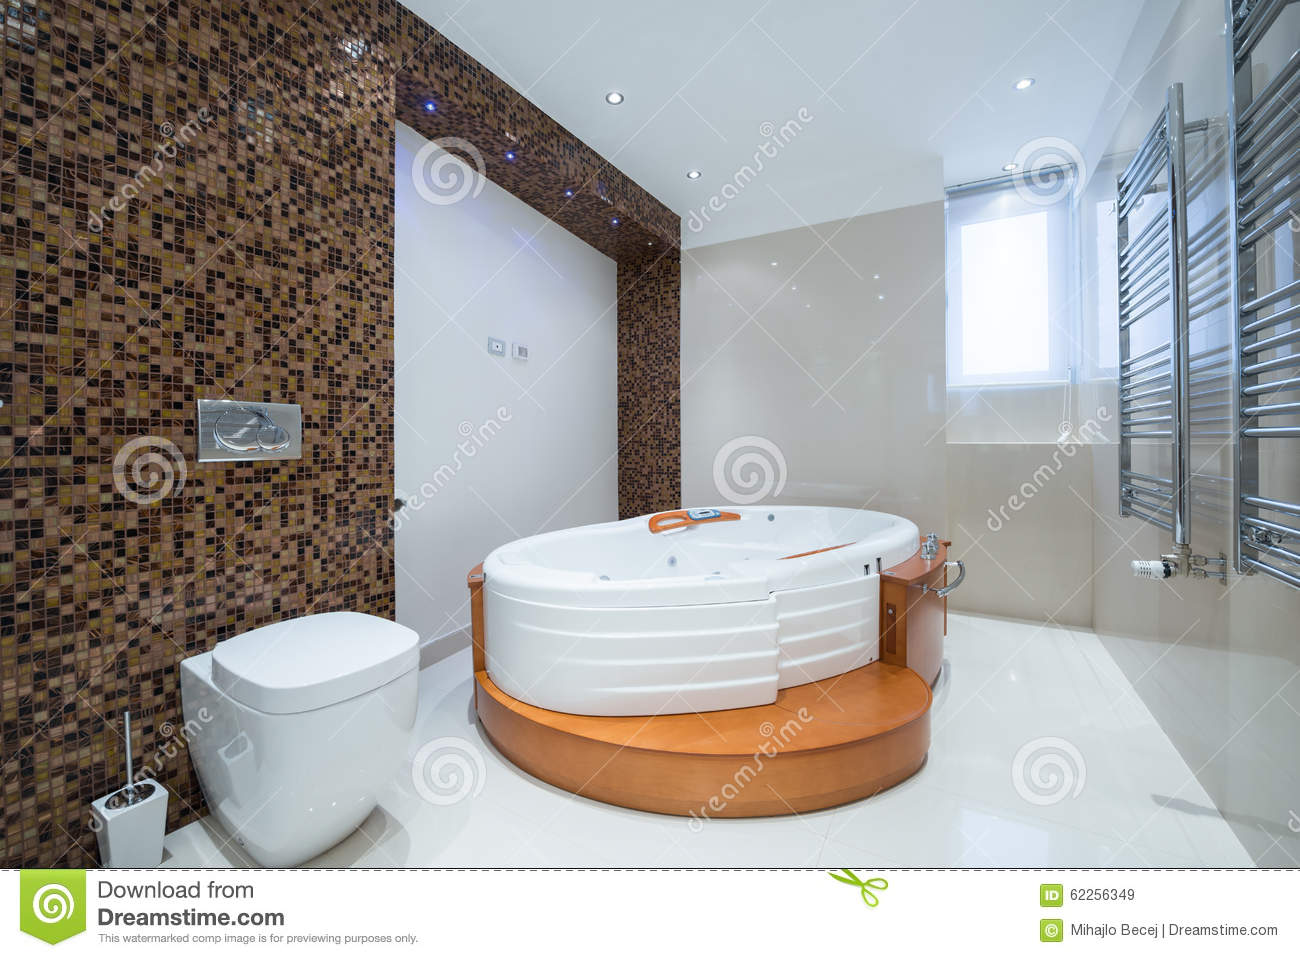 Interior of a modern luxury bathroom with jacuzzi bathtub stock